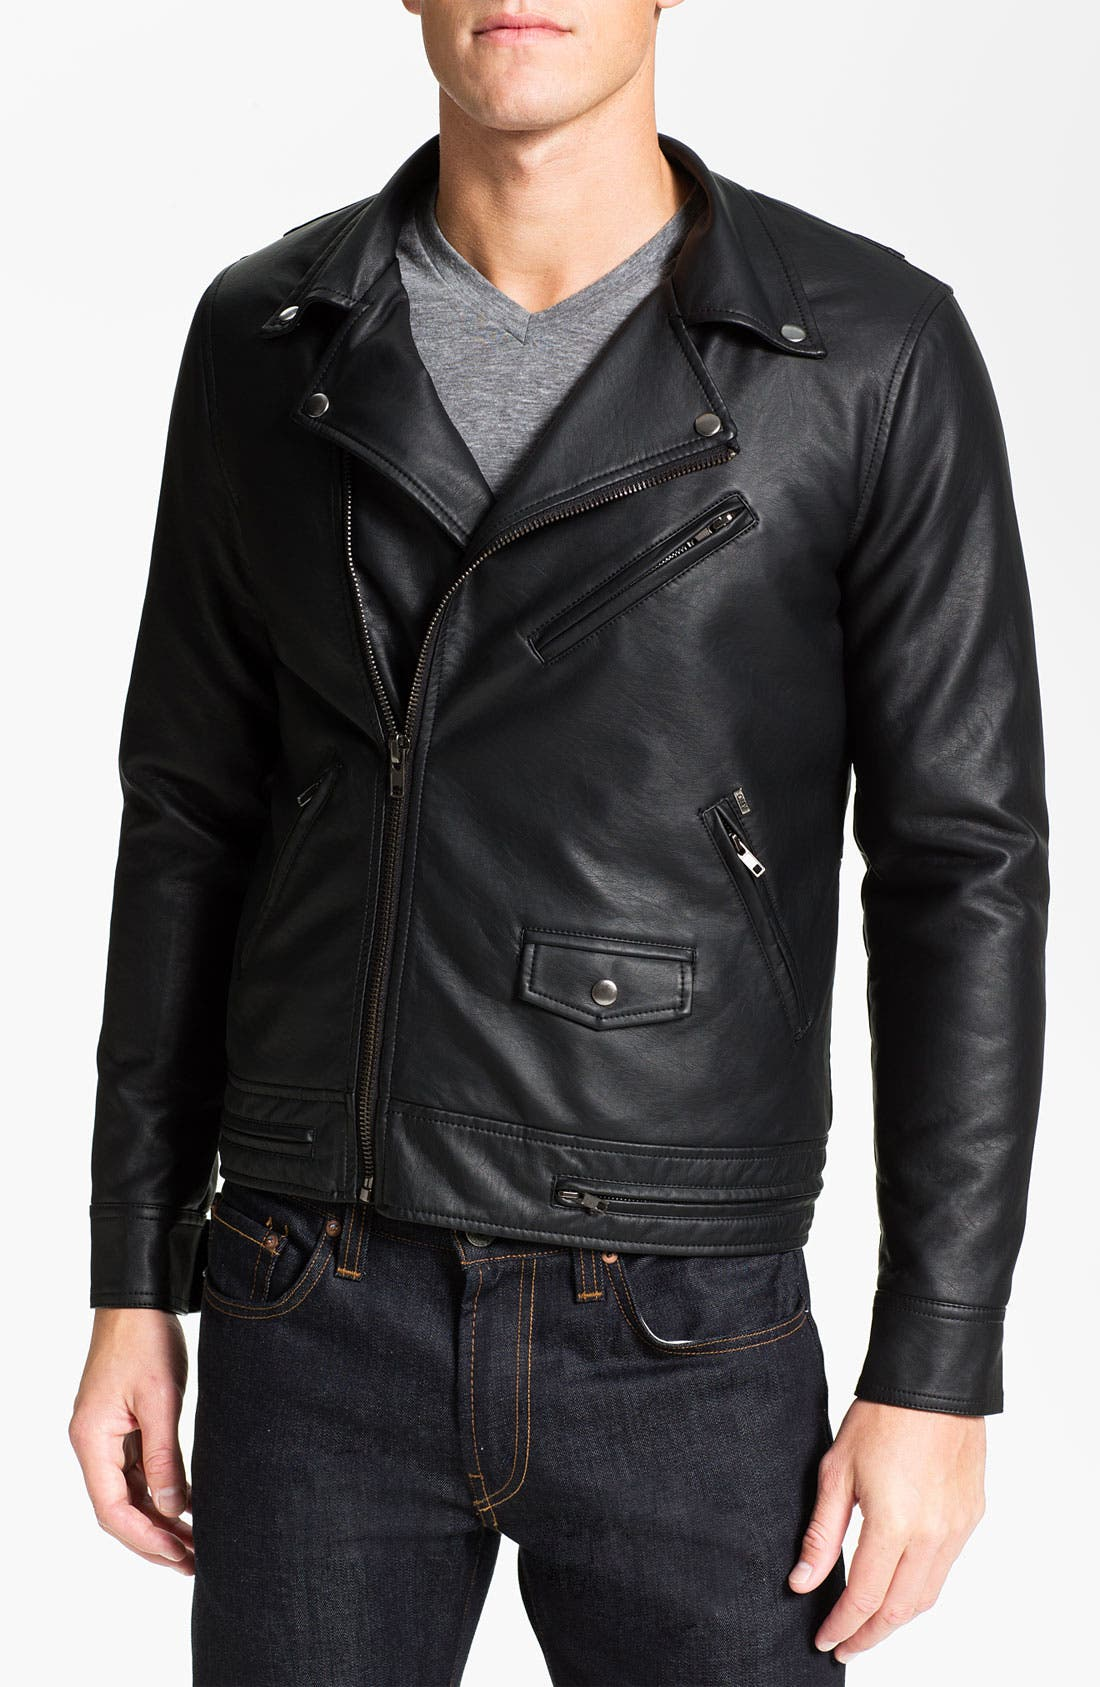 Alternate Image 1 Selected - Obey 'Dirty' Faux Leather Jacket